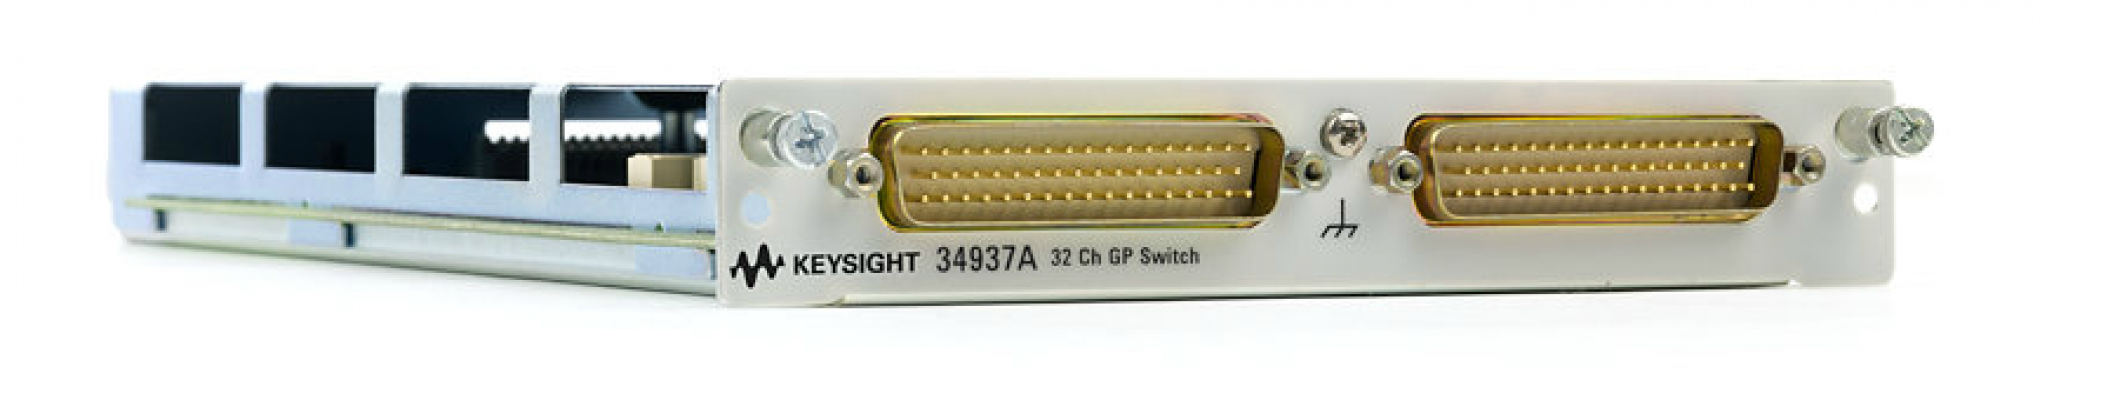 32-Channel FormC/Form A General Purpose Switch for 34980A, 34937A